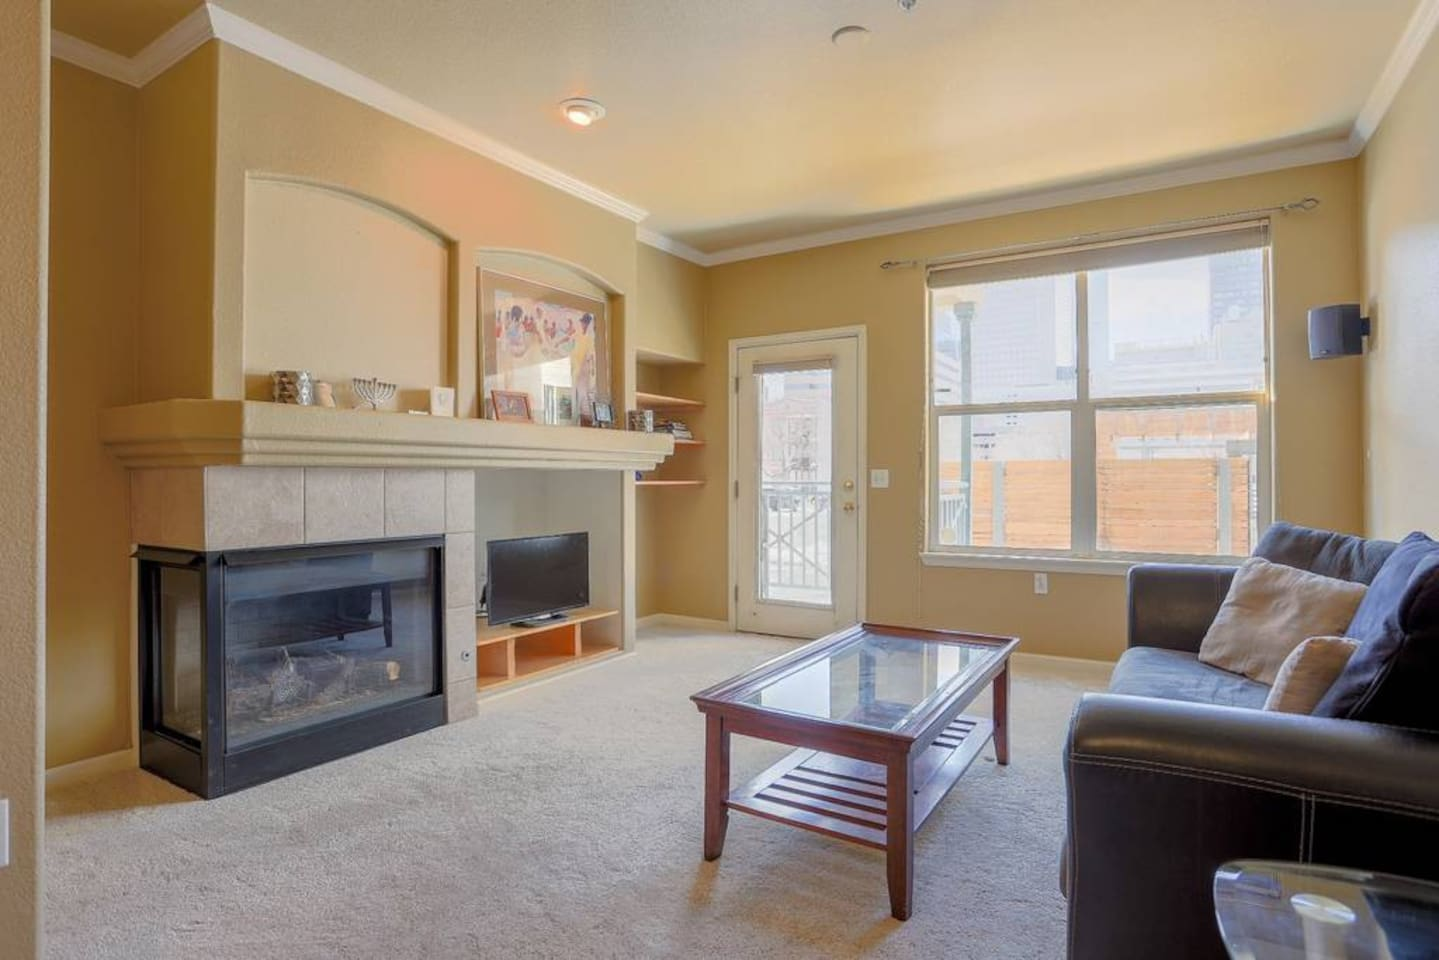 A view of the living room with access to back patio area. Here you can relax, watch TV, read or access the patio (overlooks downtown Denver).